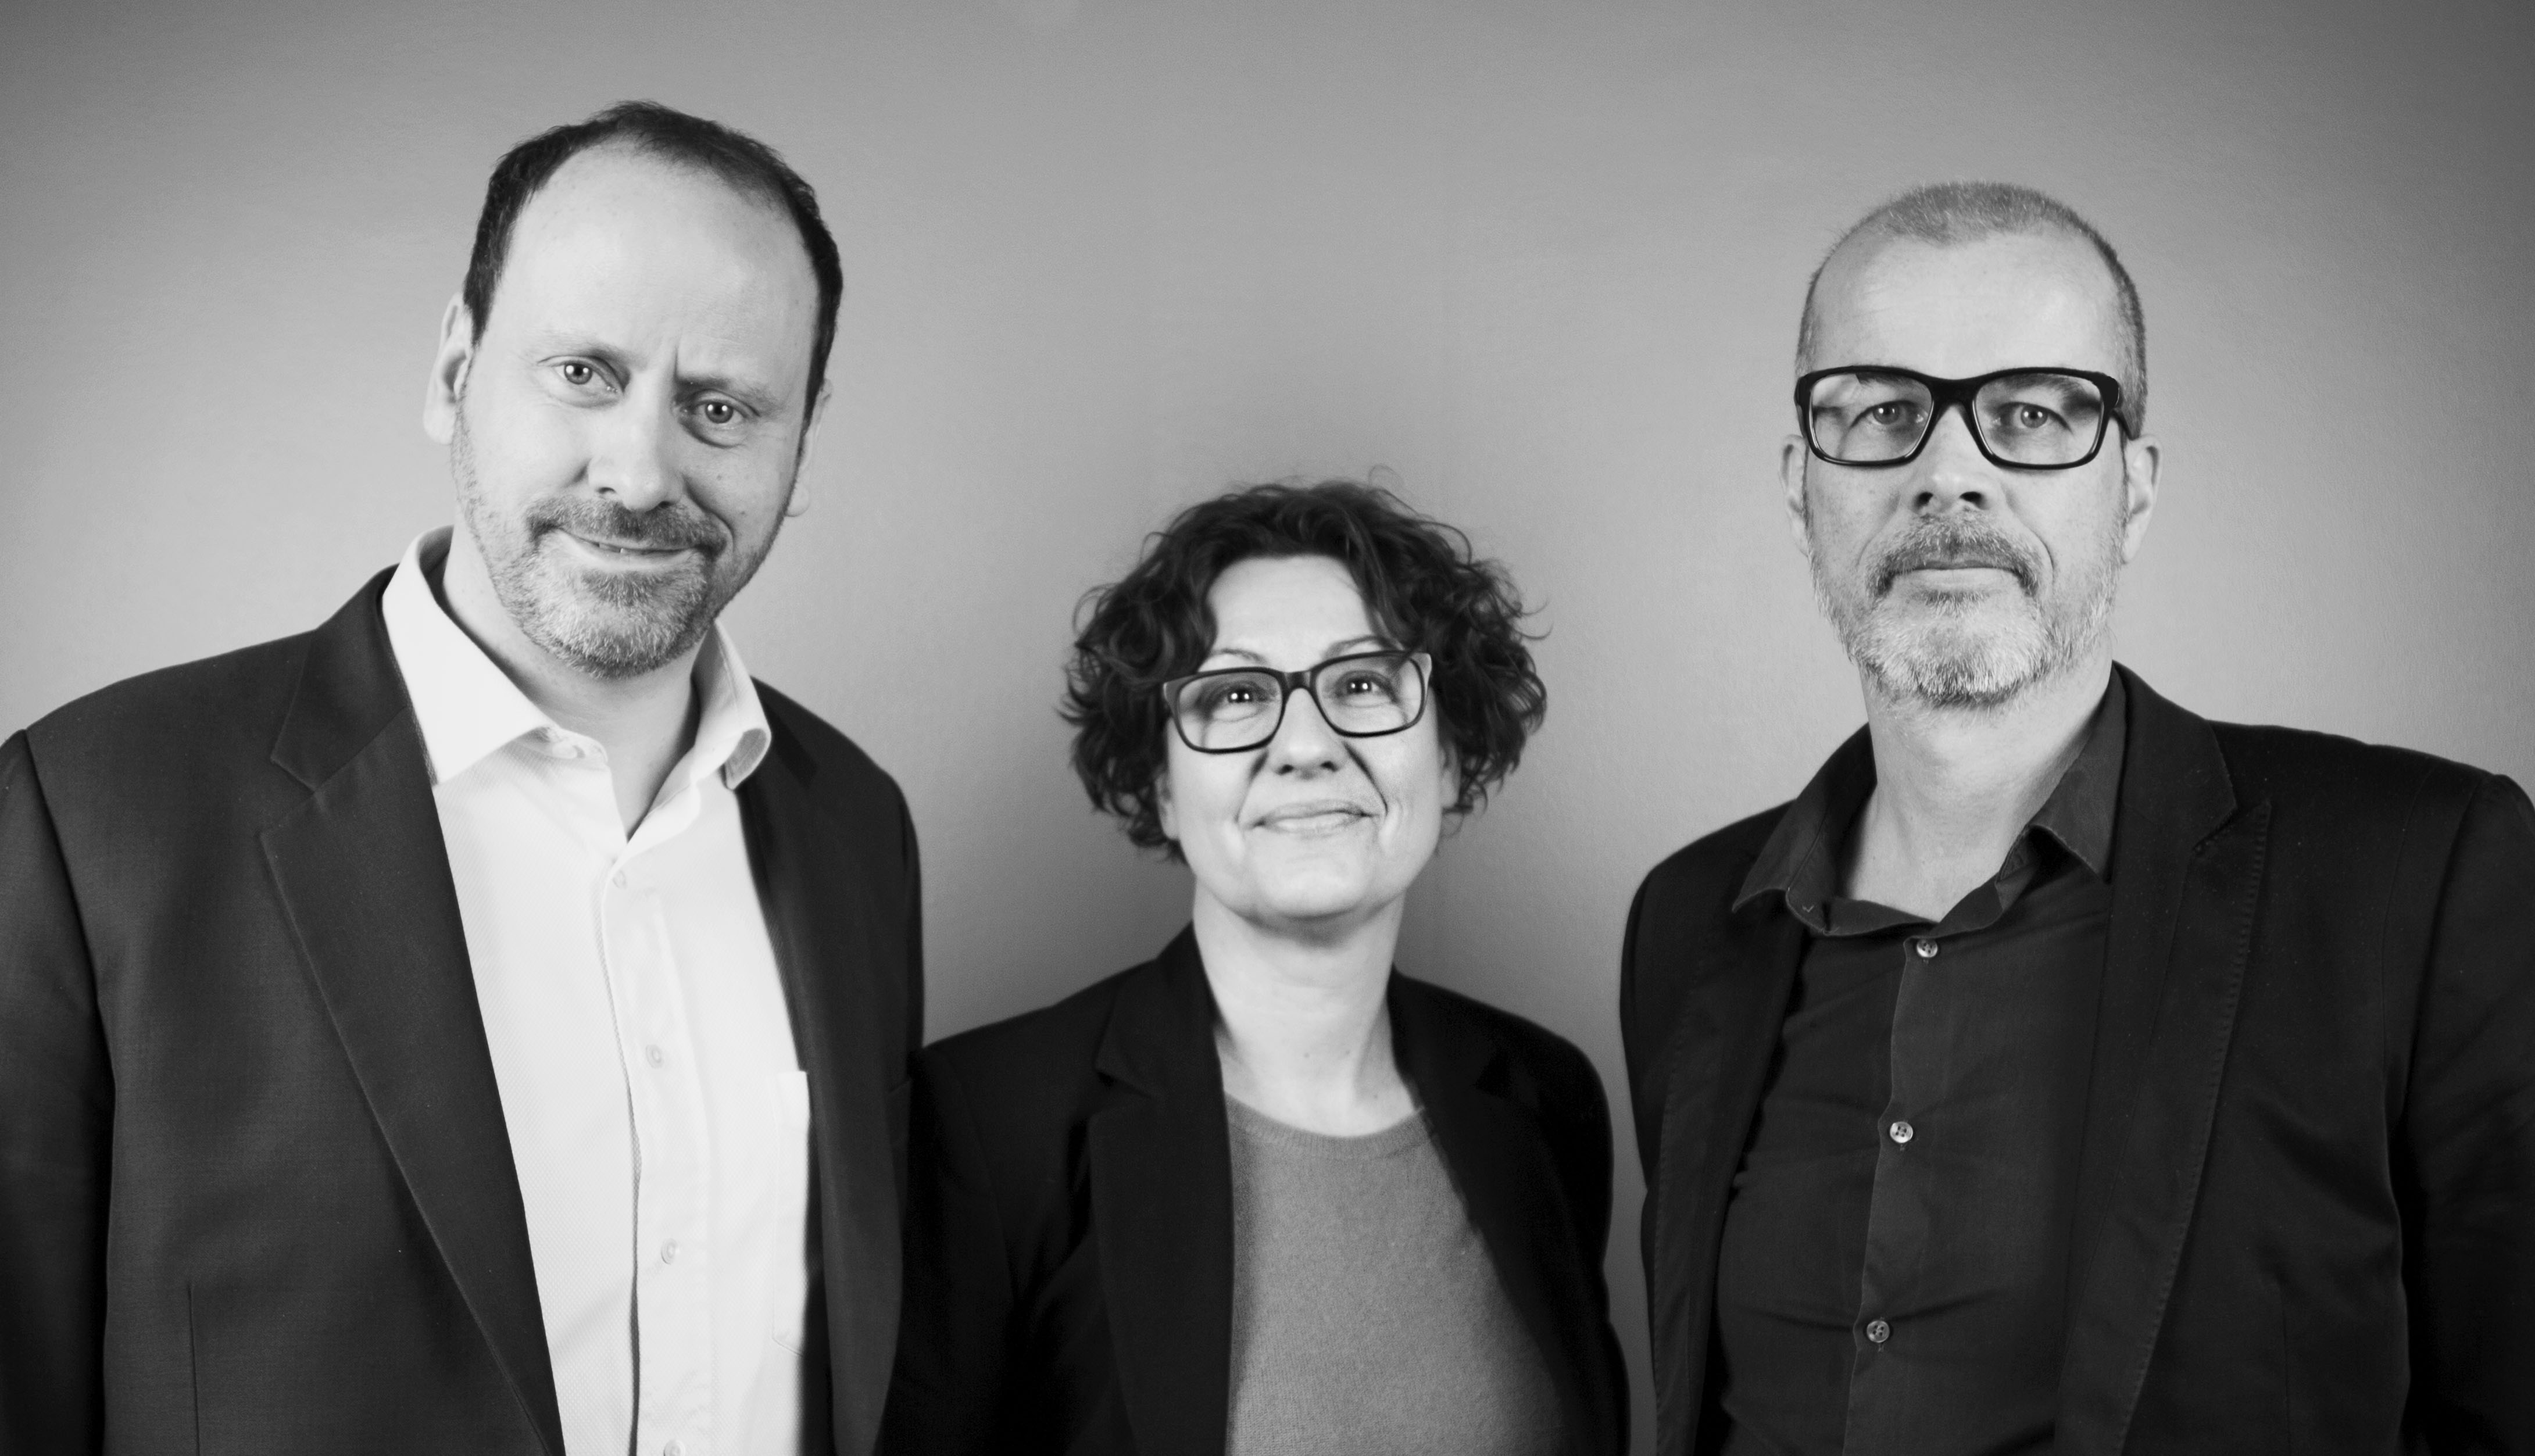 Marcus Hasselblad, Mari-Ann Mortensen and Pierre Renhult